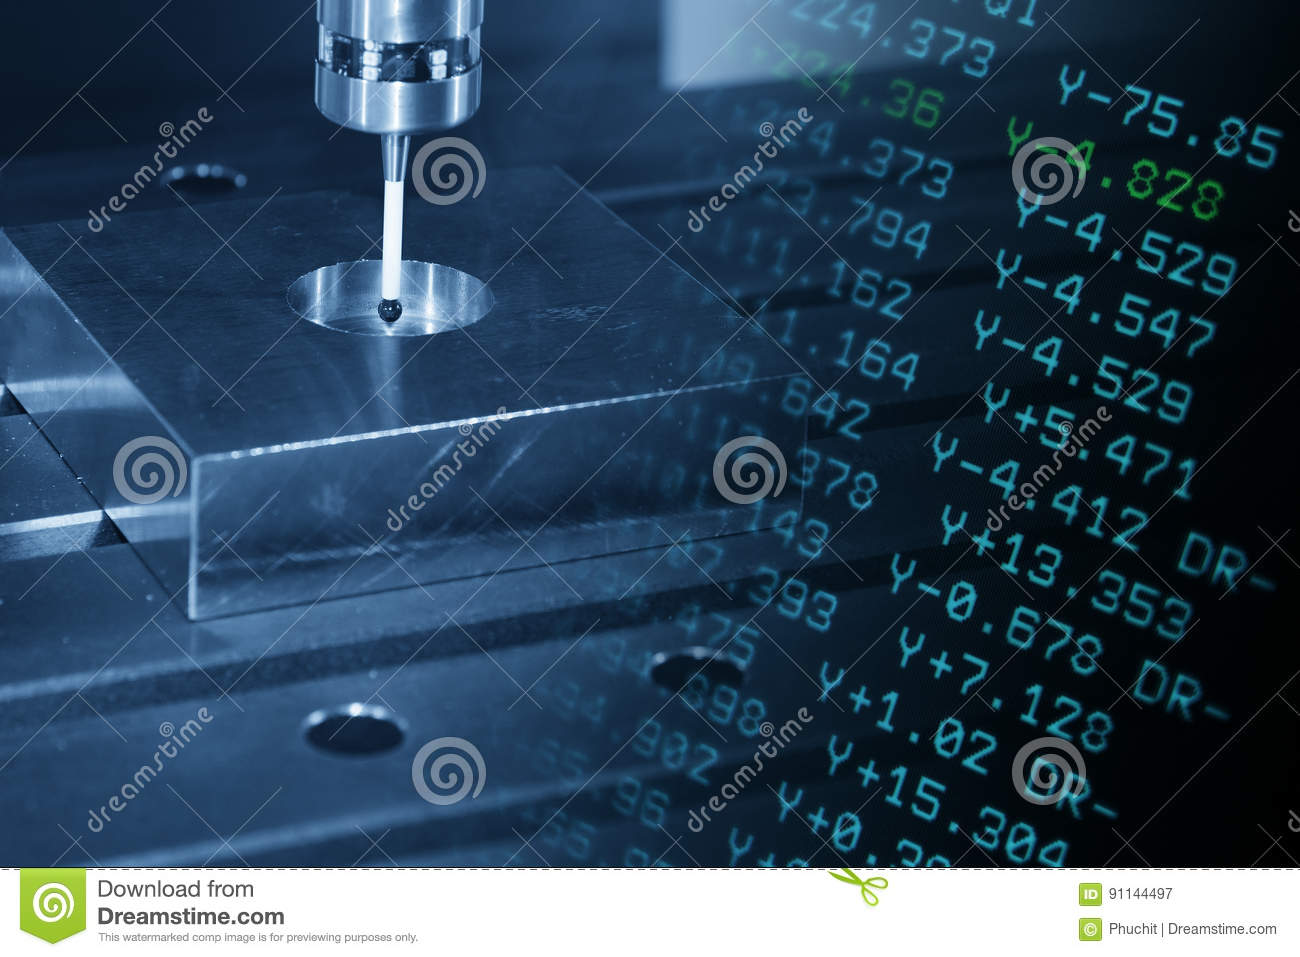 The measurement probe stock image. Image of laser, part - 91144497